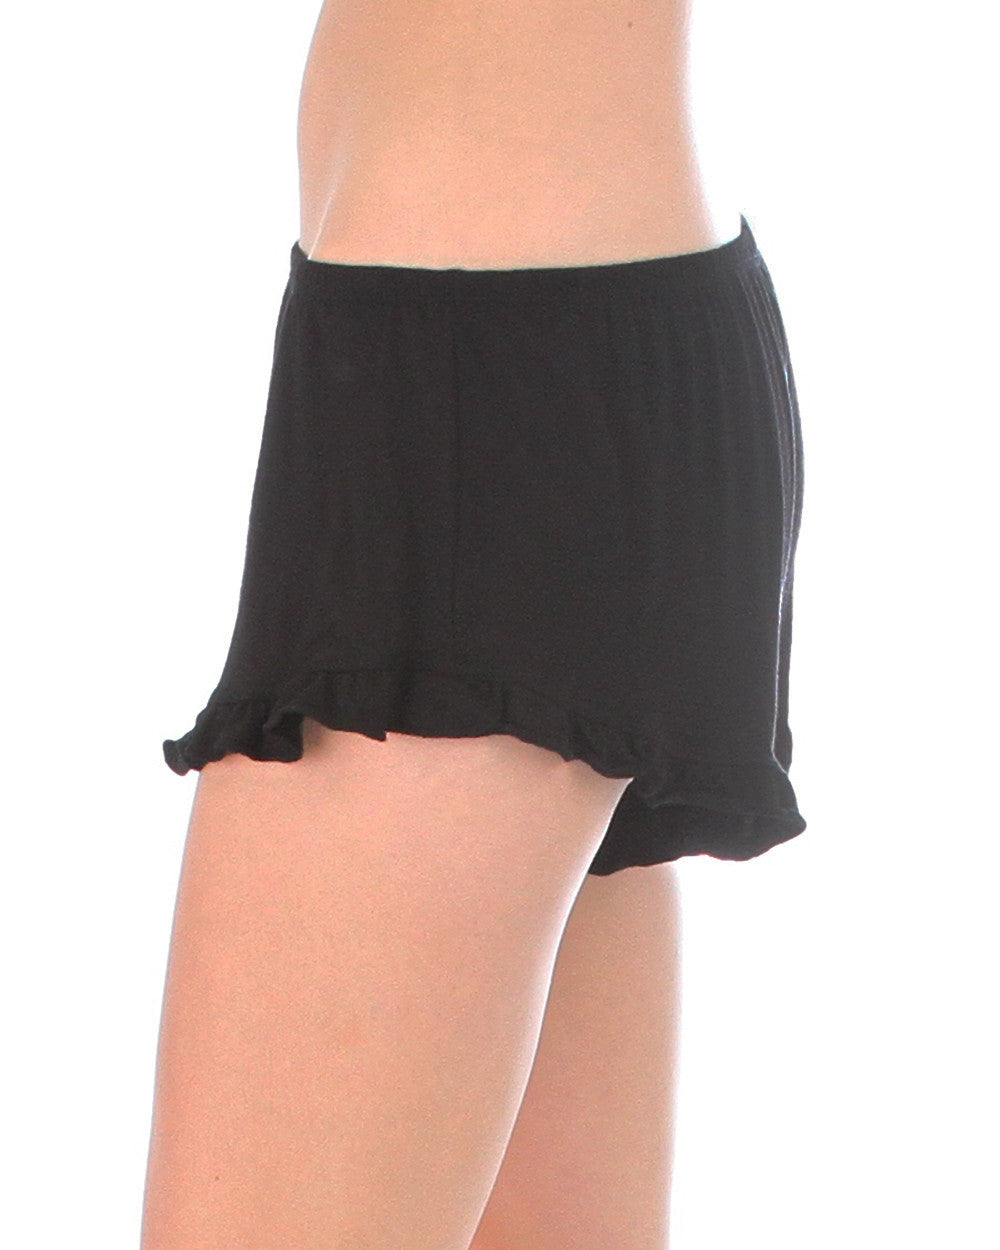 Vodi Shorts With Ruffle Trim In Black